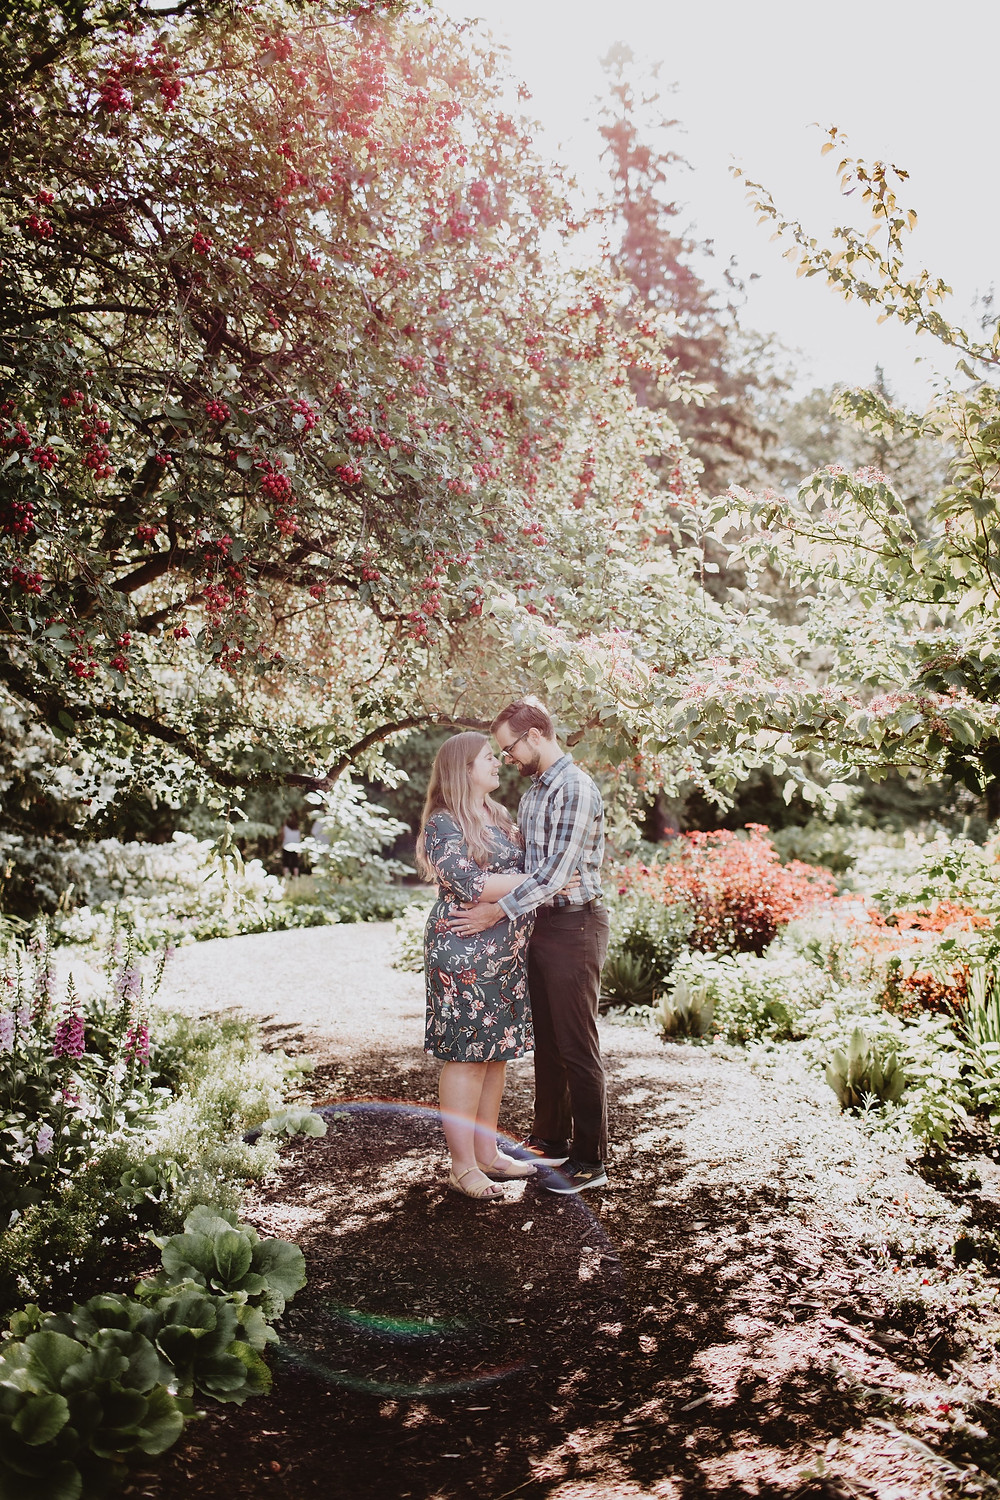 Stunning morning maternity photo session in the English Gardens in Winnipeg, Manitoba.